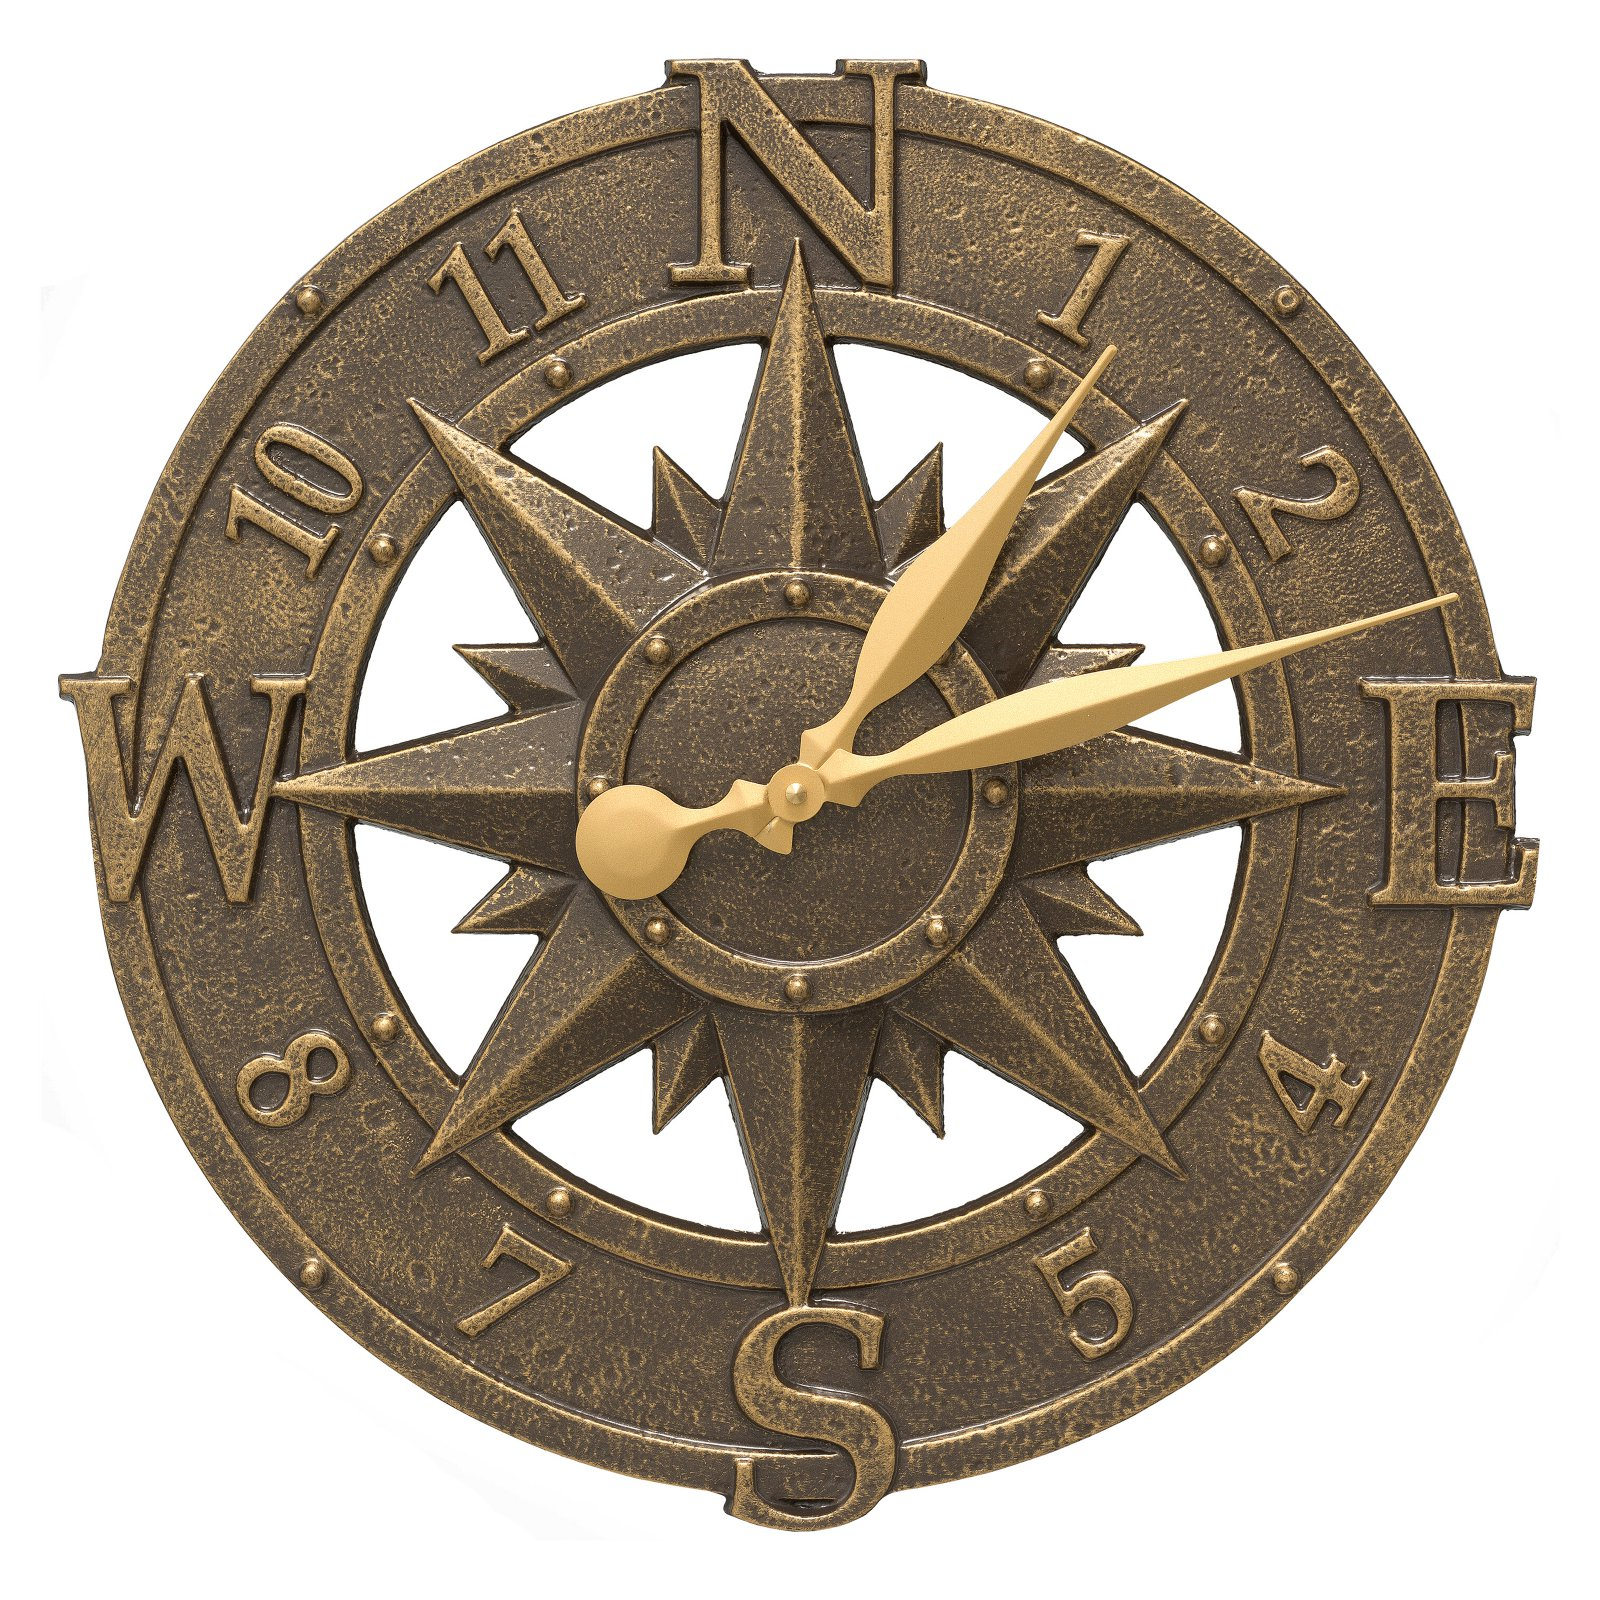 Whitehall Compass Rose 16 in. Outdoor Wall Clock